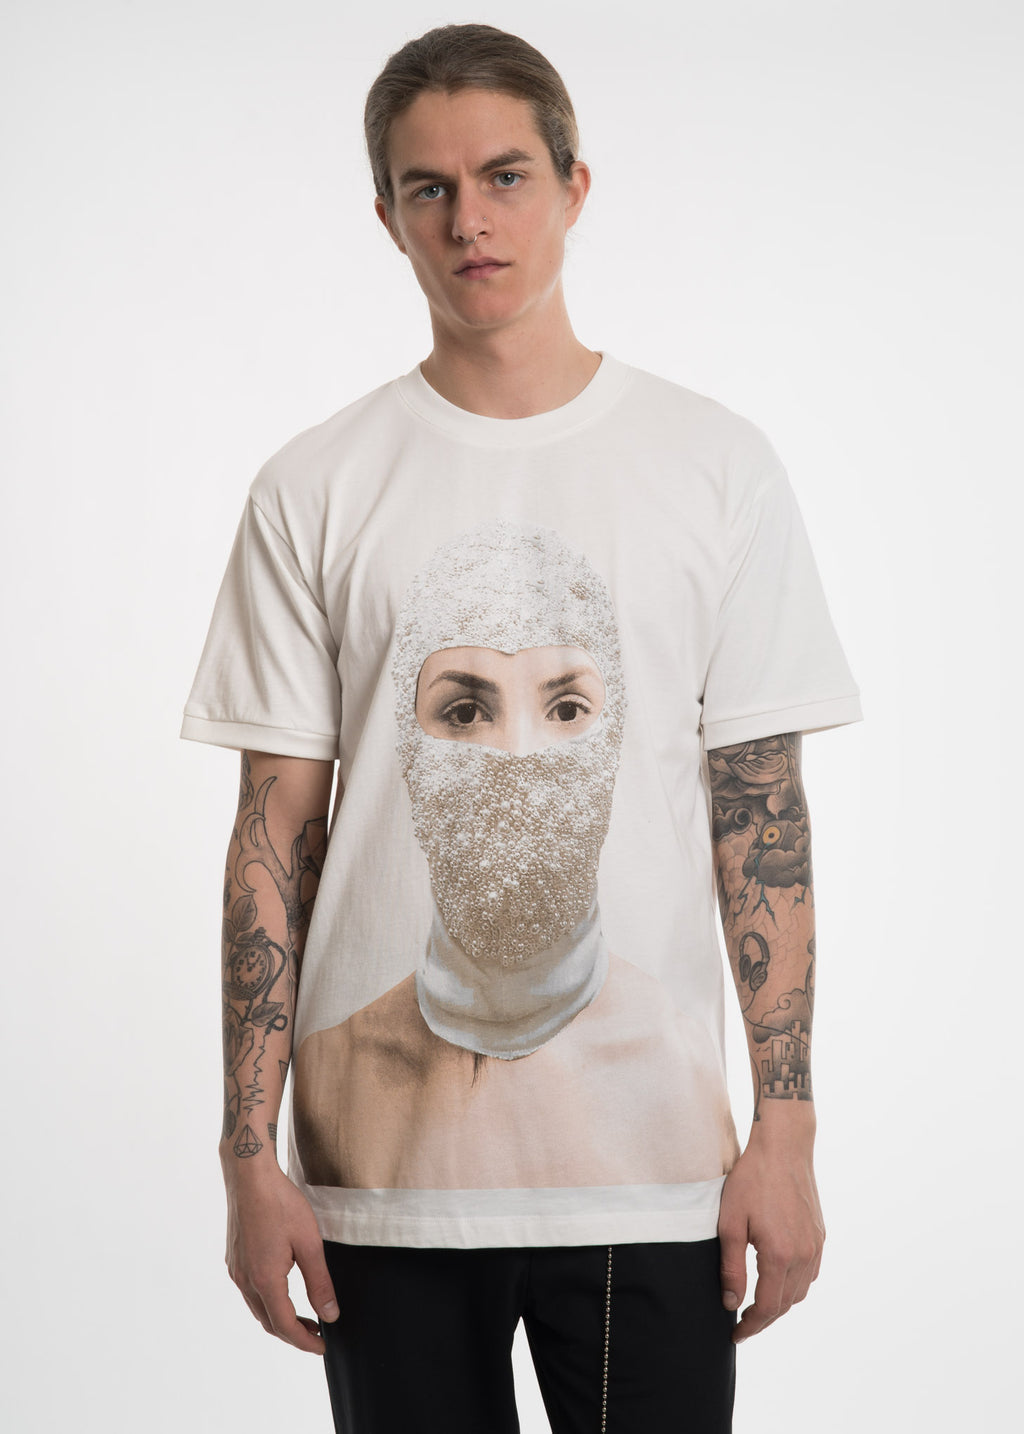 Ih Nom Uh Nit, White T-Shirt w/ Printed Woman, 017 Shop